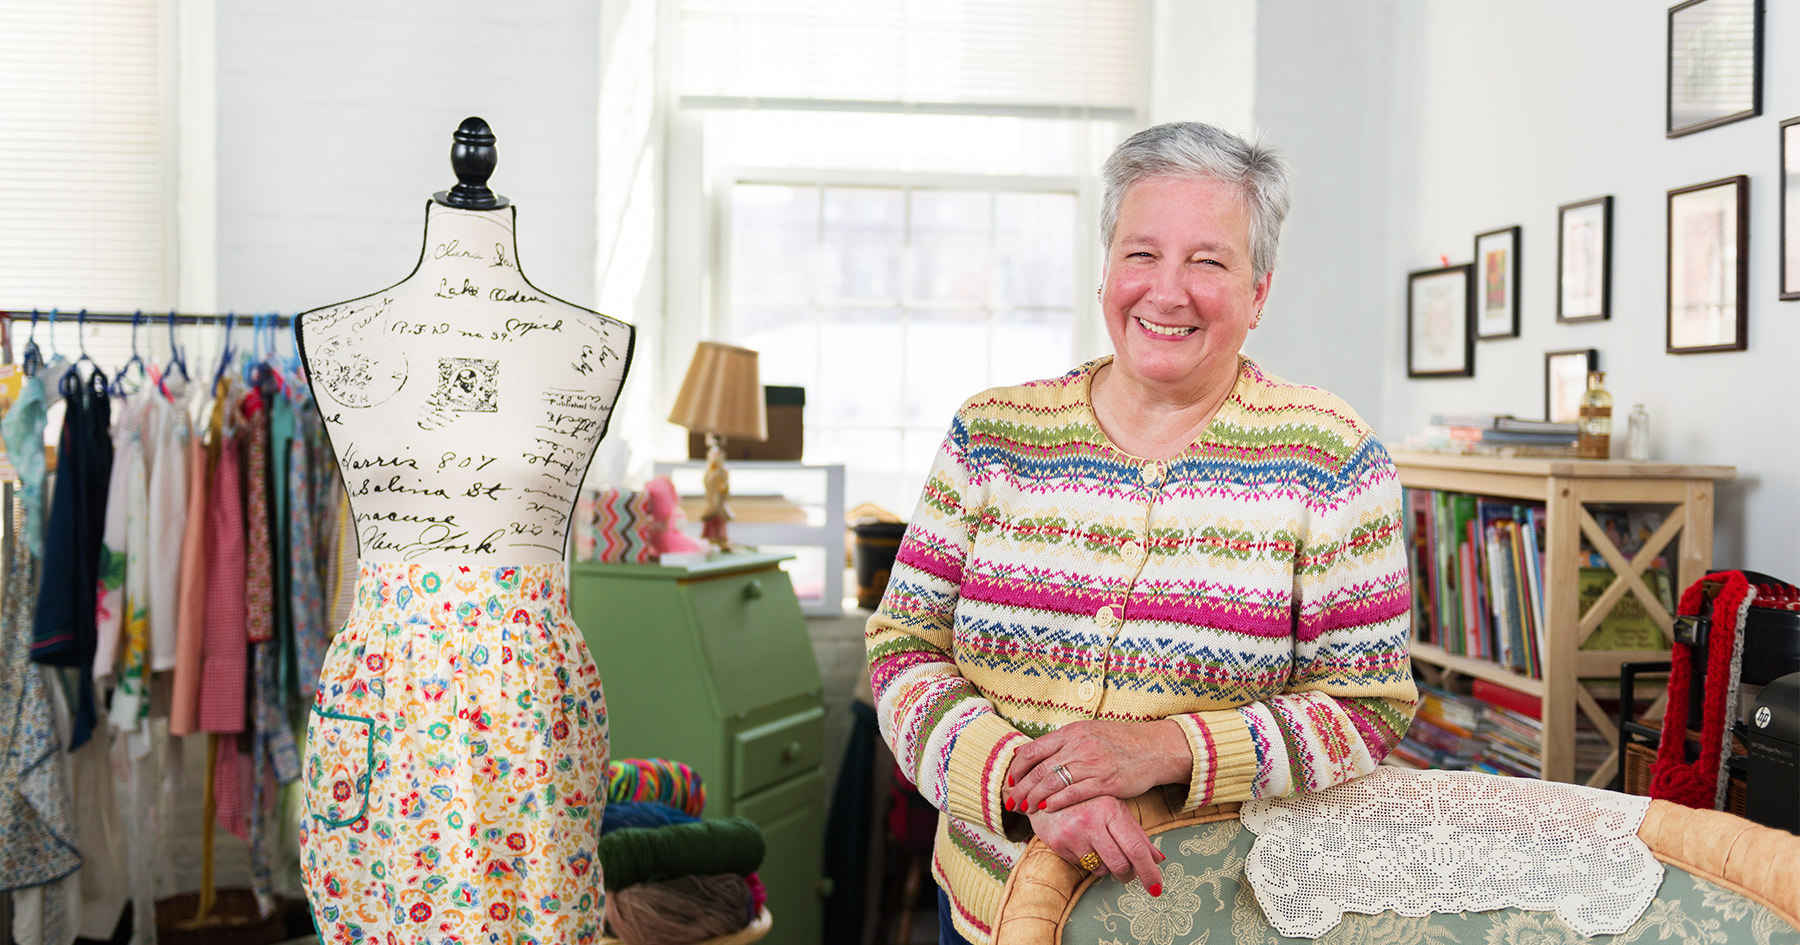 Roberta Ransley-Matteau, owner of Retro Girls Attic and Lily-Jane Knits, in her studio at the Pepperell Mill Campus. Photographed by Portland Headshot